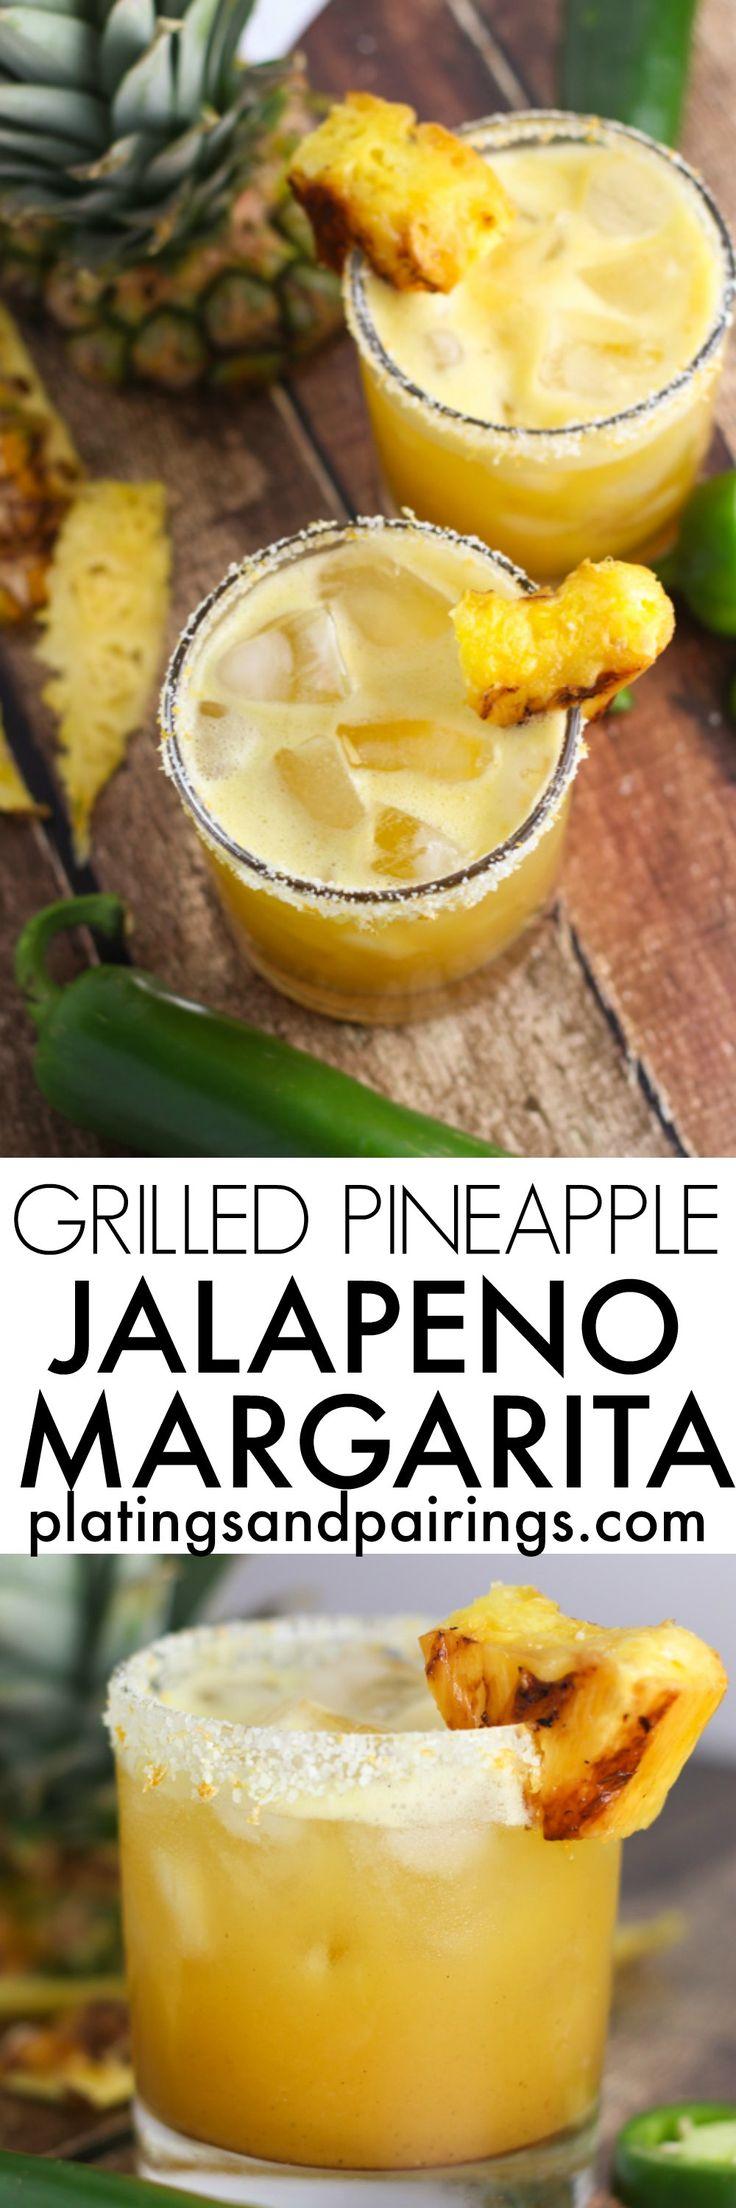 These Grilled Pineapple Jalapeno Margaritas are the perfect blend of sweet, spicy, and smoky. Caramelized grilled pineapple combines with a jalapeno infused tequila and a splash of vanilla for this totally tasty treat | platingsandpairings.com